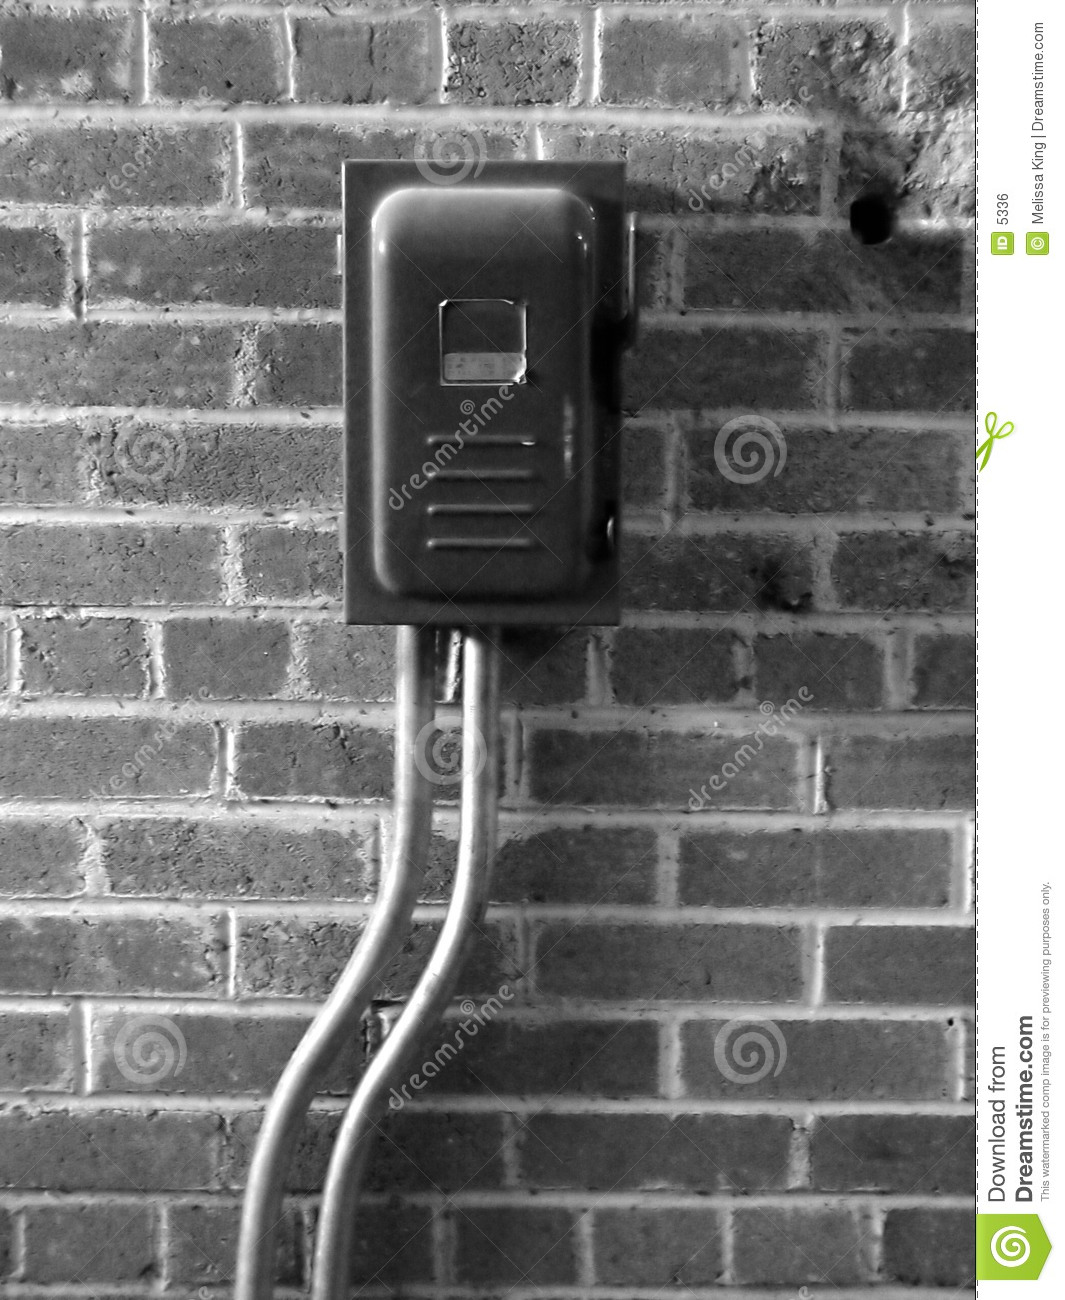 Power Switch on Wall